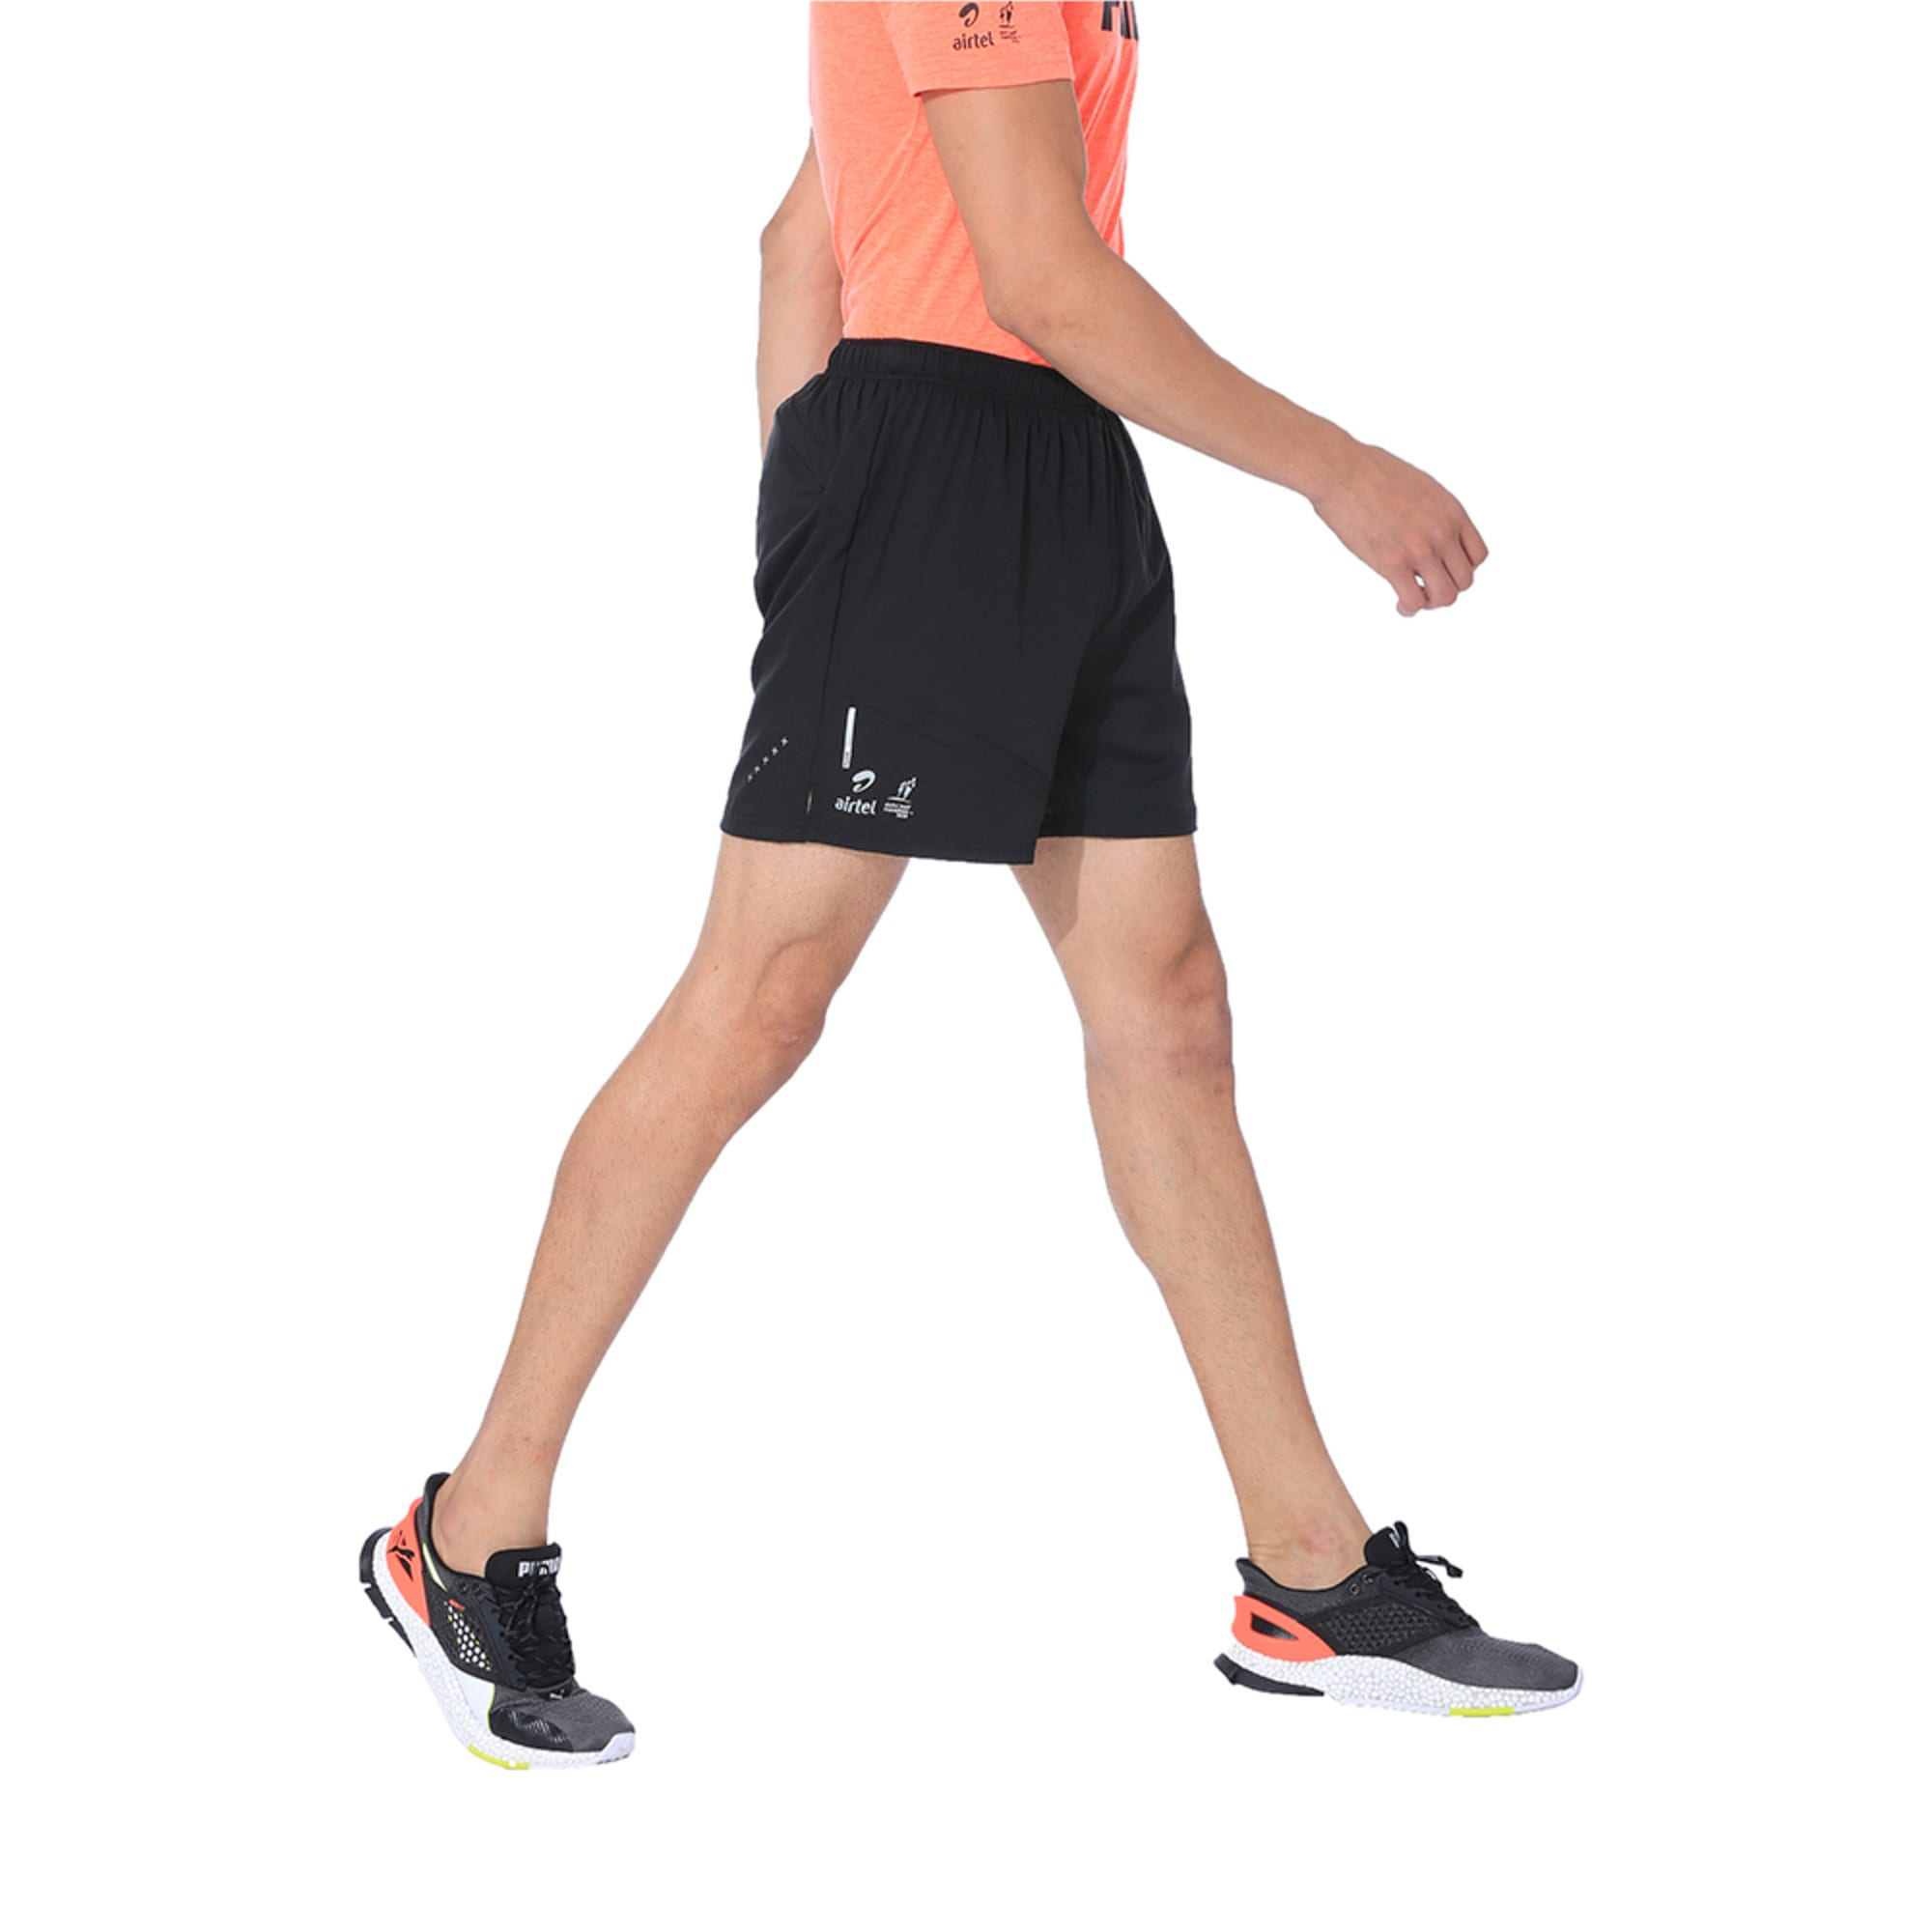 Thumbnail 2 of IGNITE Running Shorts, Puma Black, medium-IND